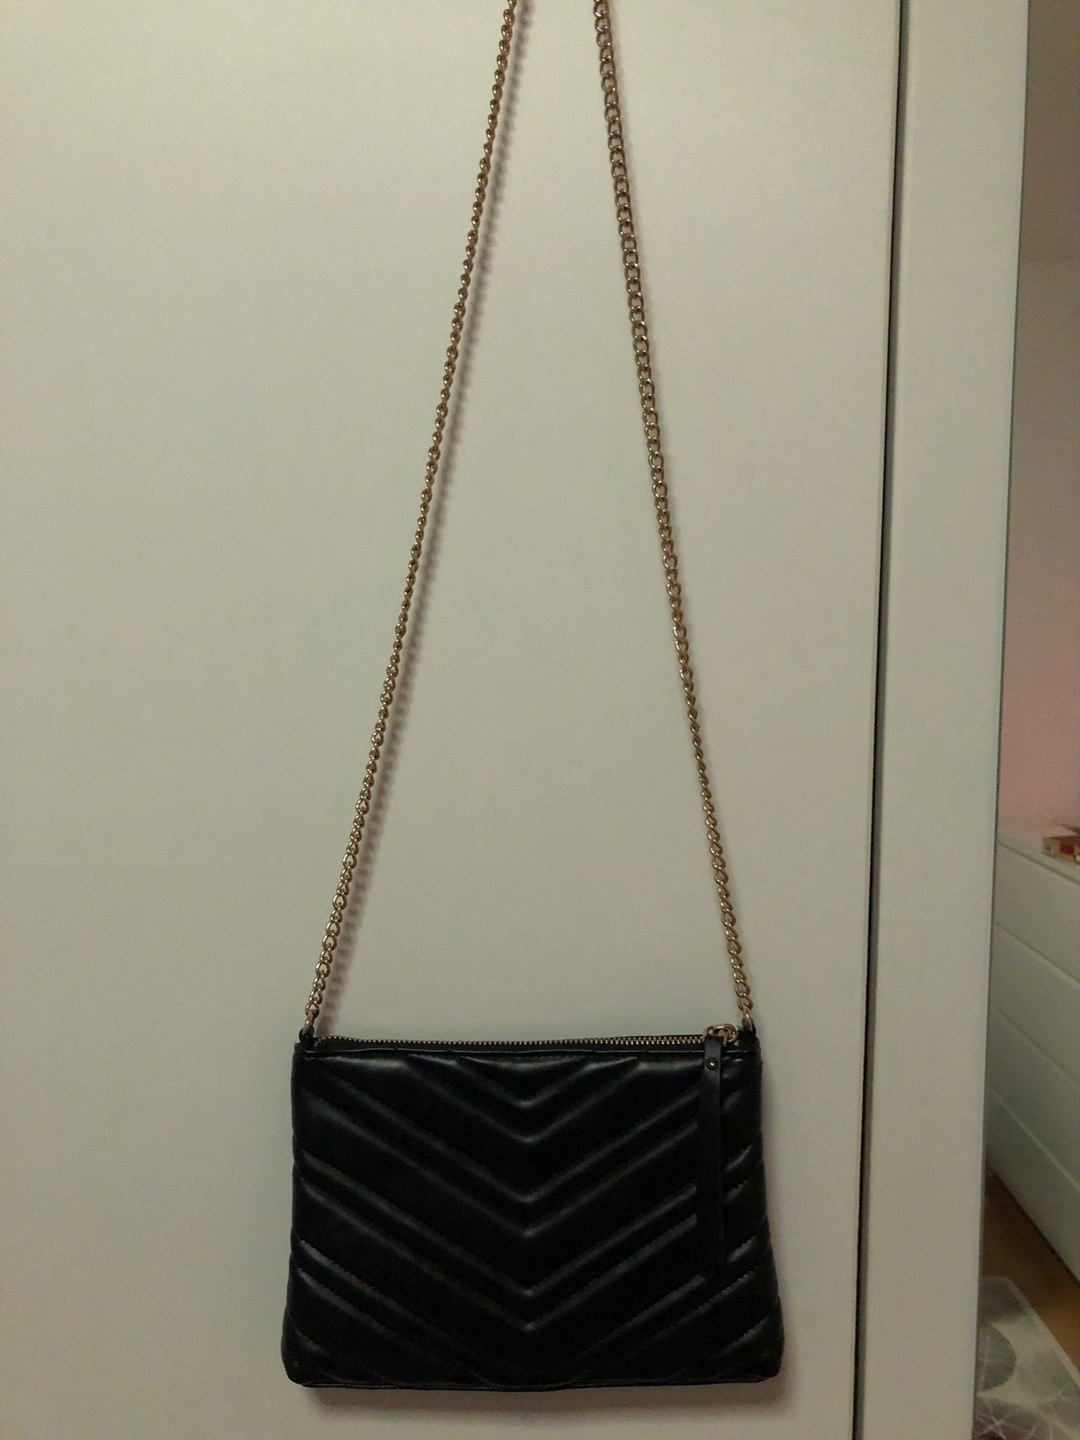 Women's bags & purses - H&M photo 1